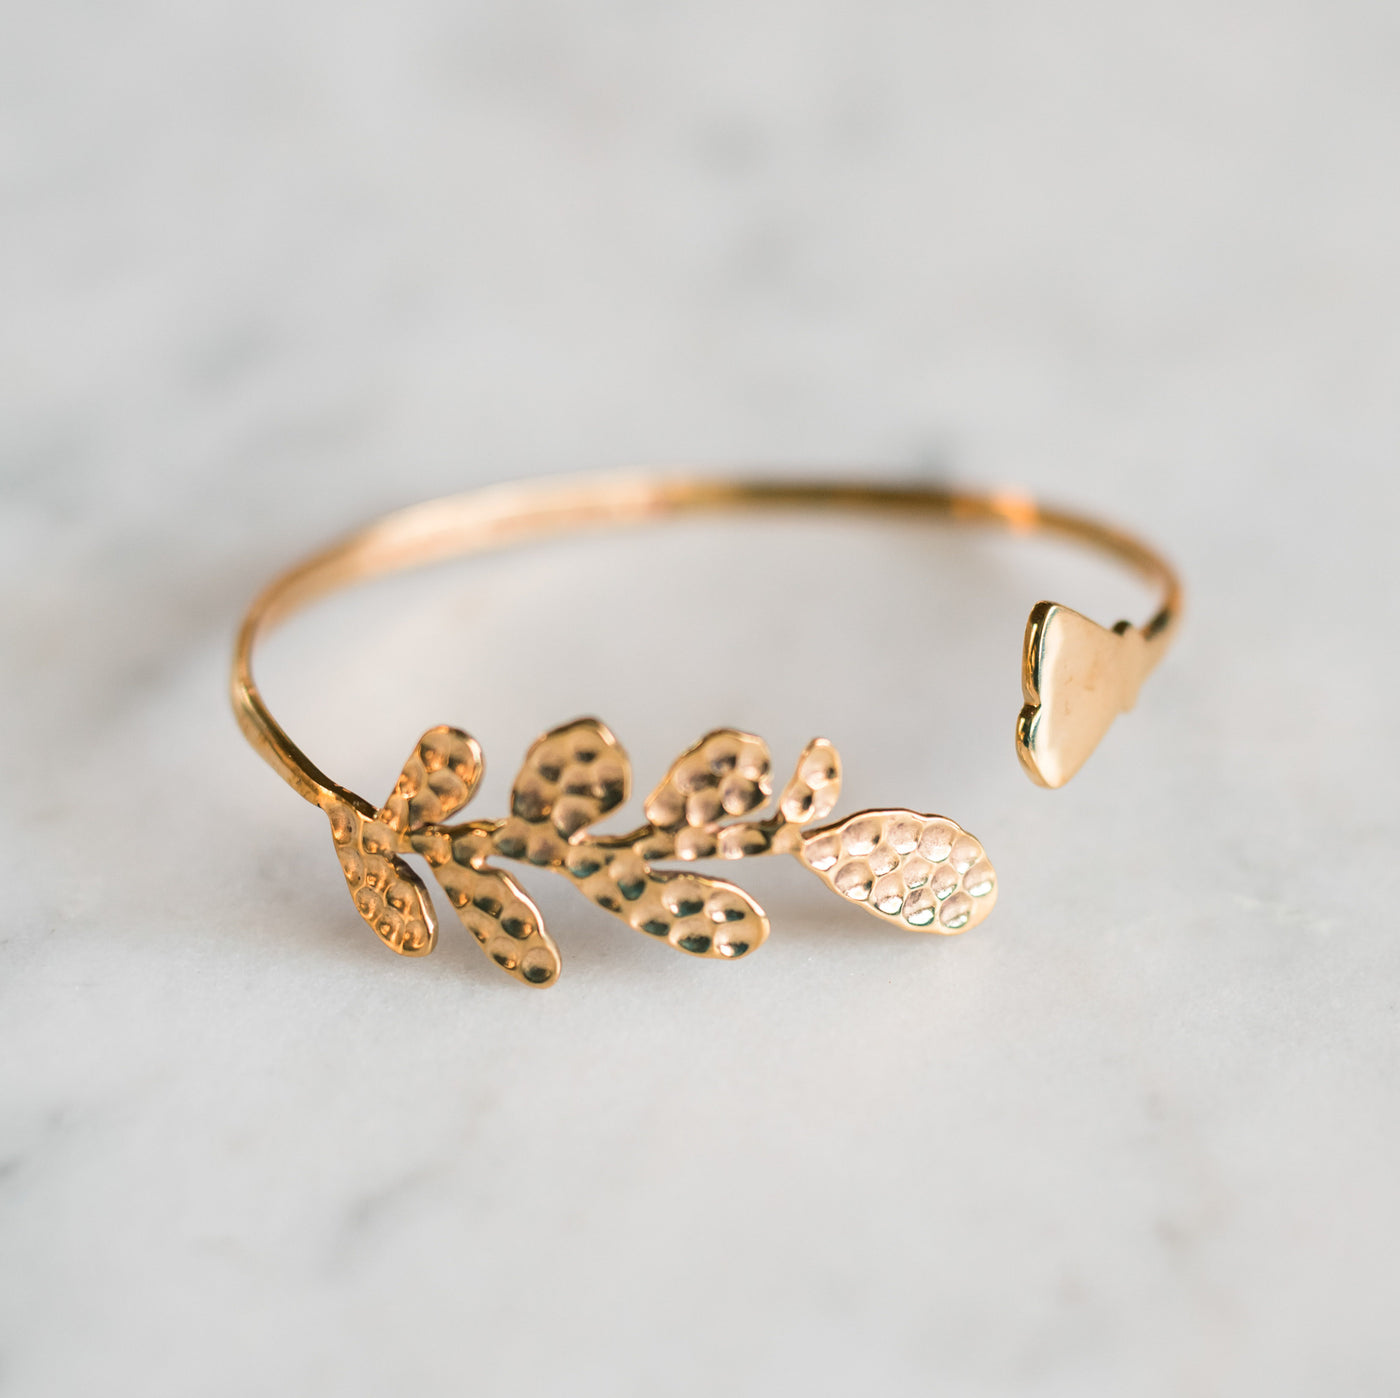 Olive Leaf and Poppy Flower Cuff Bracelet -Gold Only - Olive and Poppy